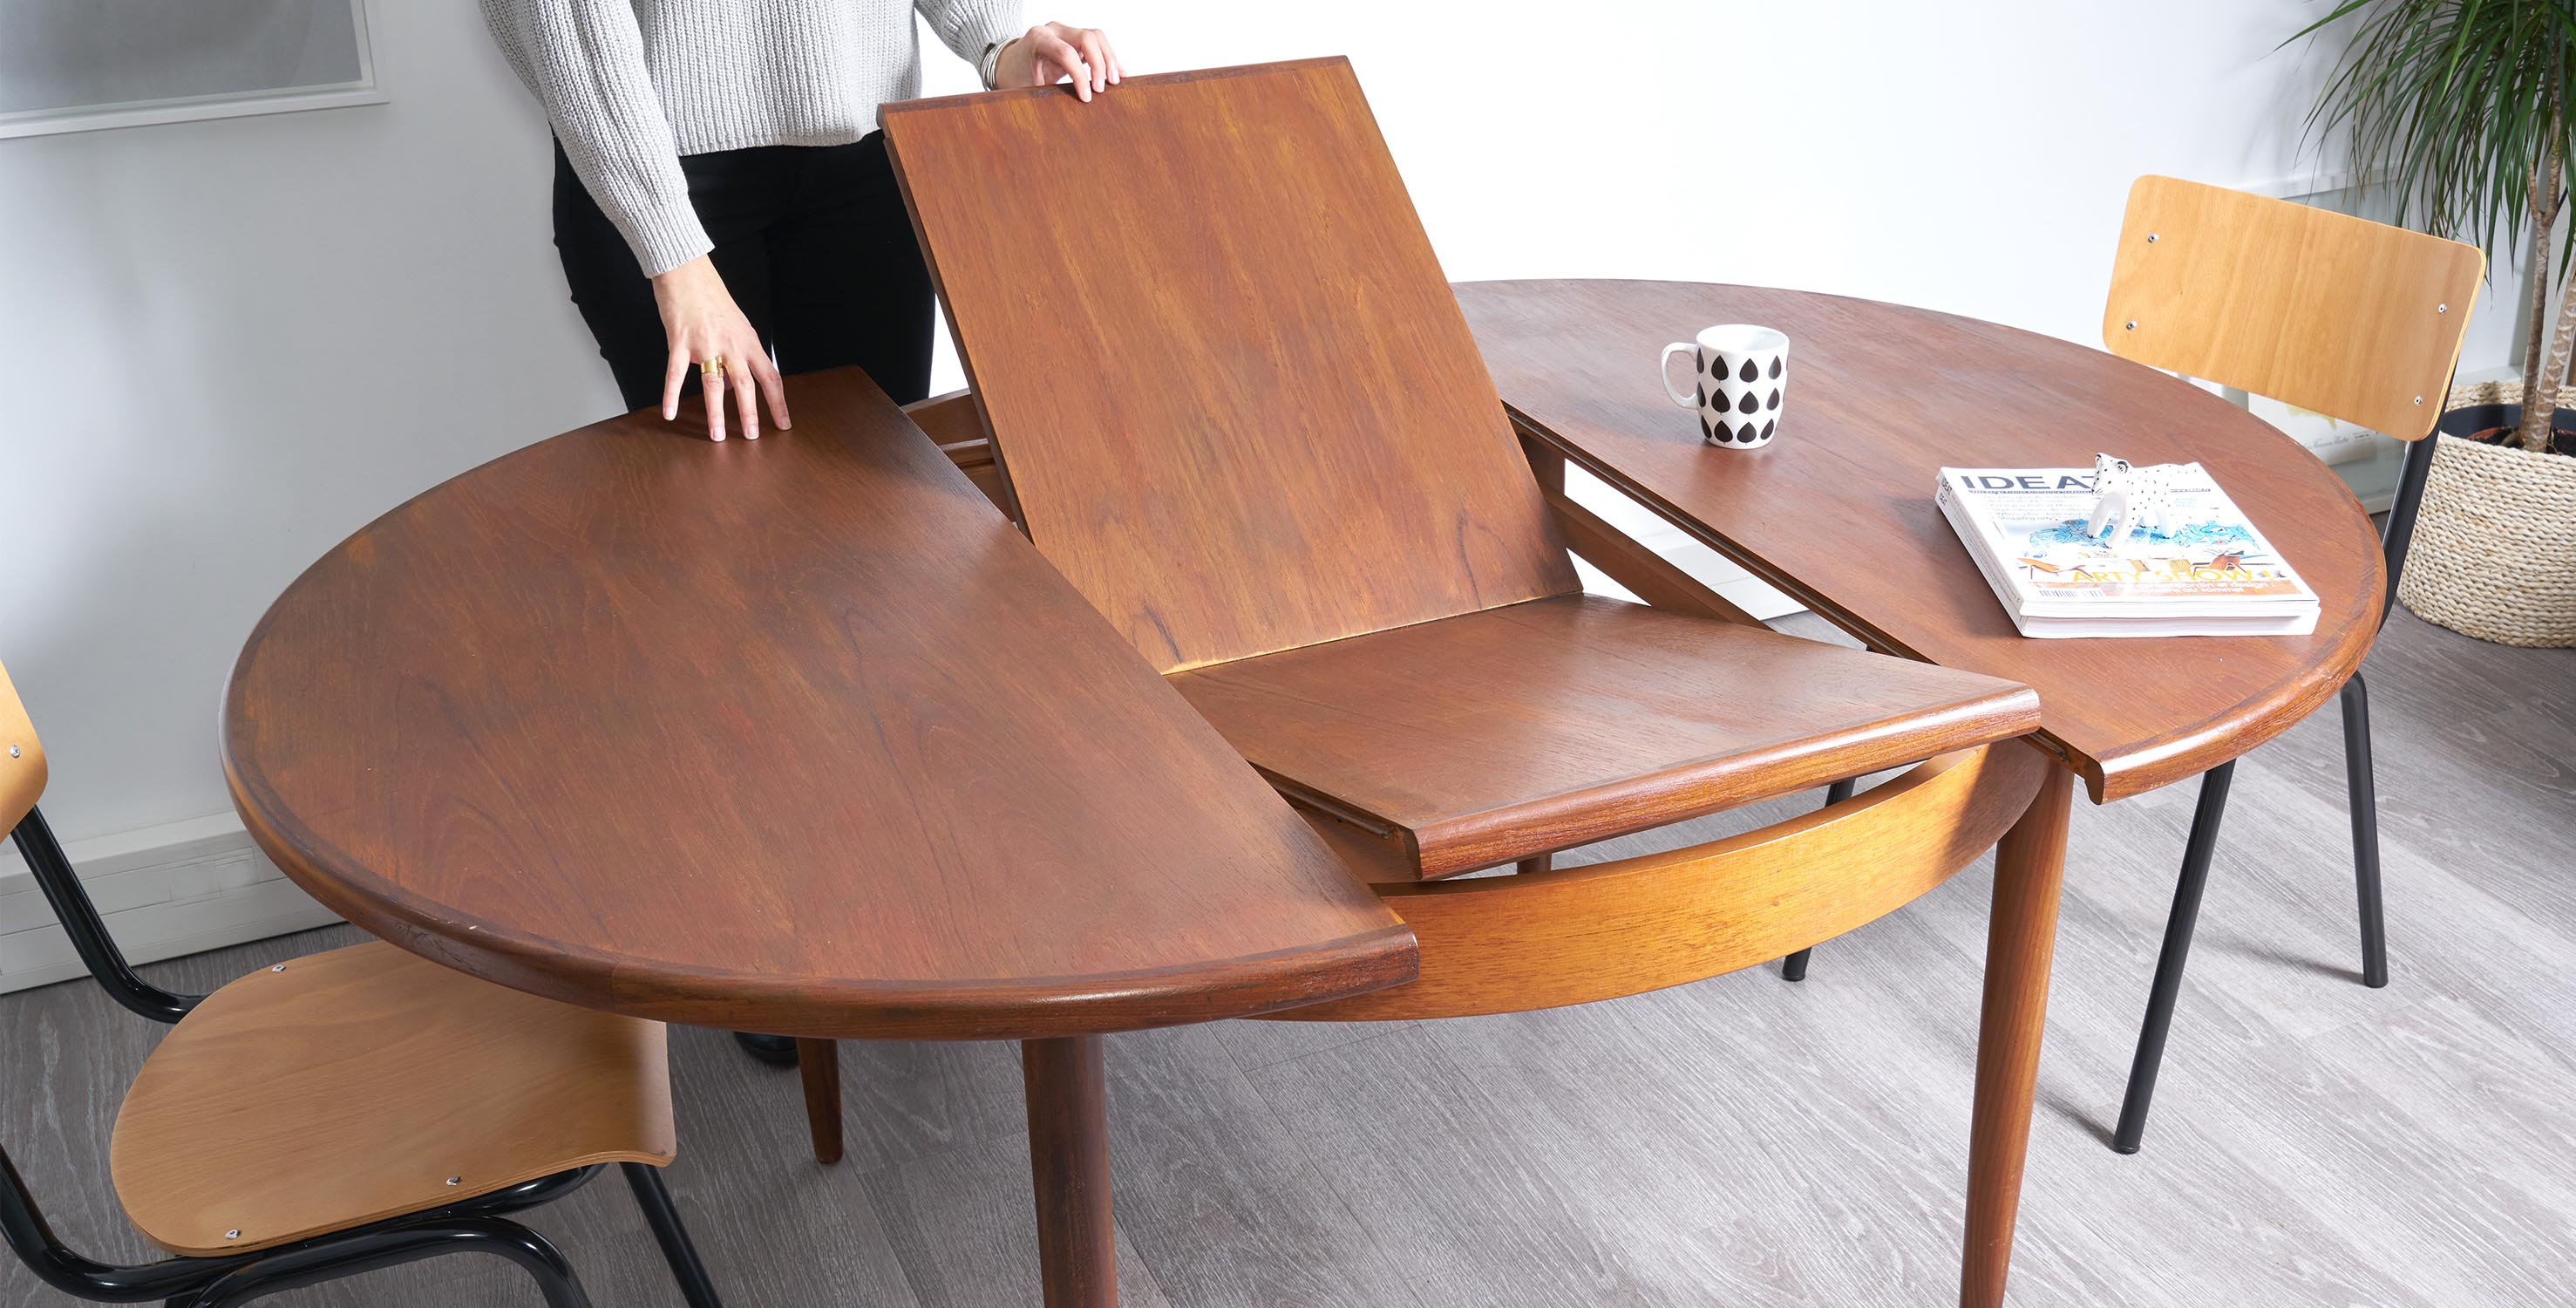 table à manger ronde extensible 1960 style scandinave